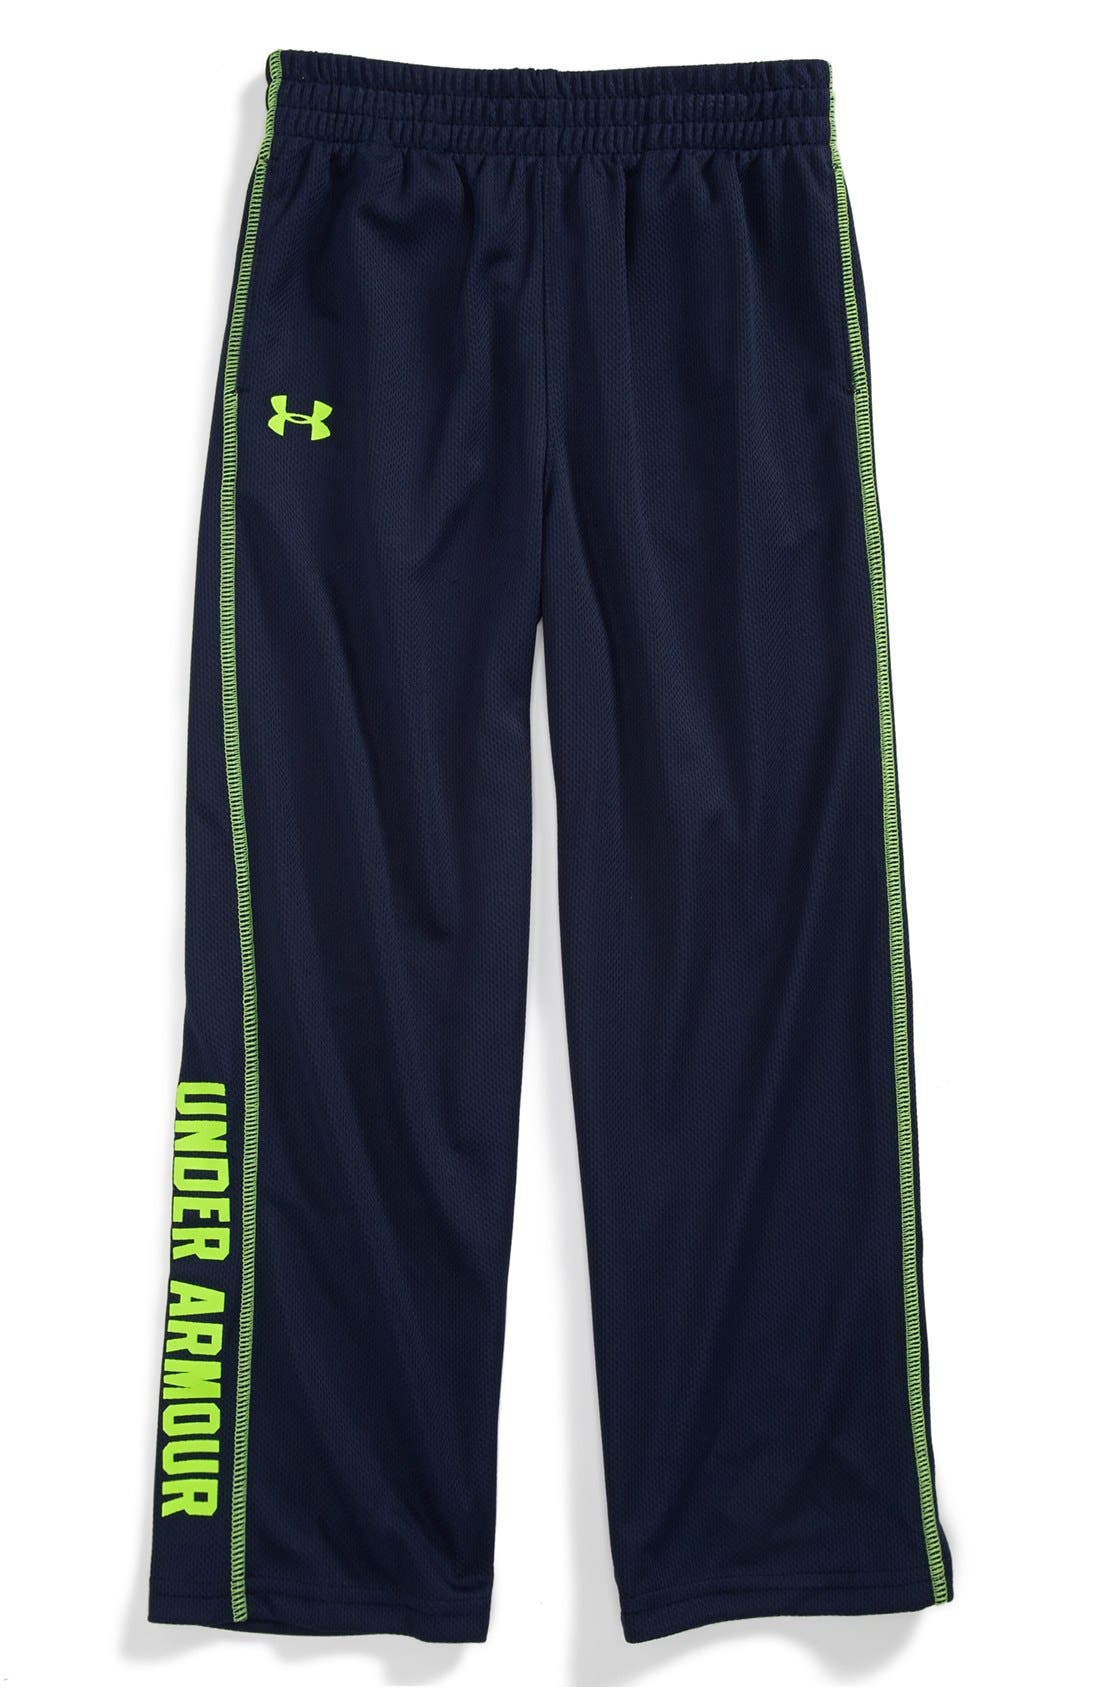 Alternate Image 1 Selected - Under Armour 'Root' Pants (Little Boys)